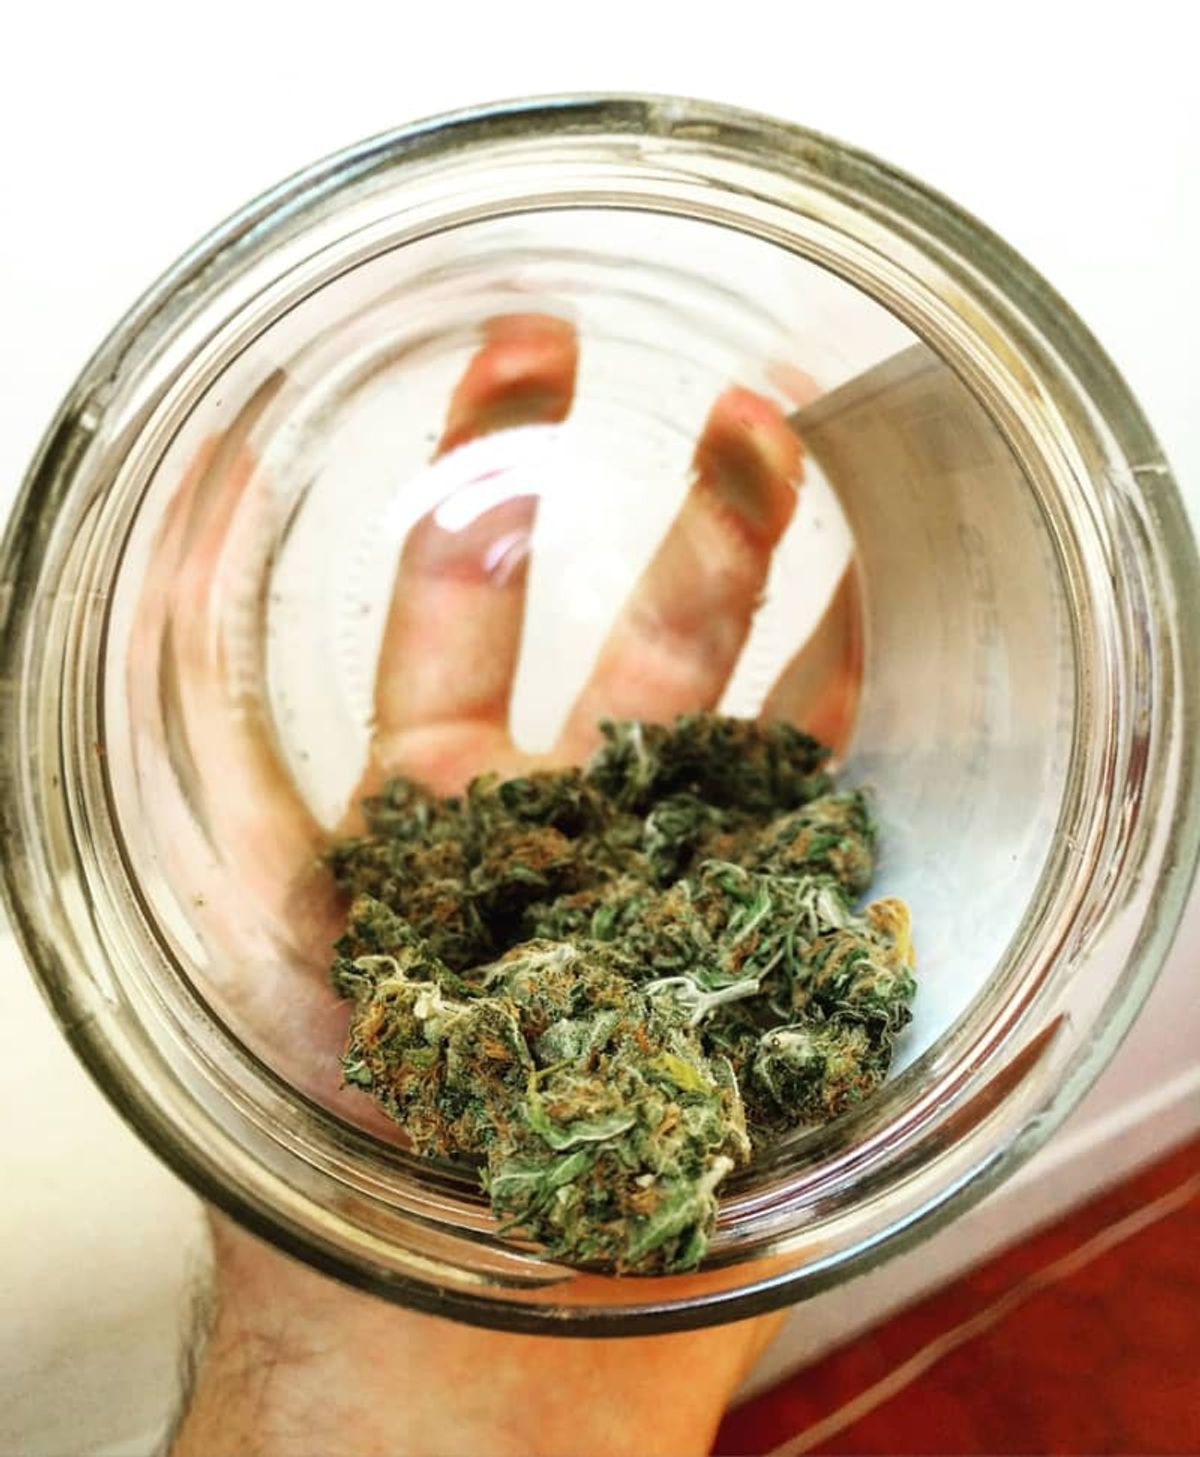 Weed withdrawal: More than half of people using medical cannabis for pain experience withdrawal symptoms